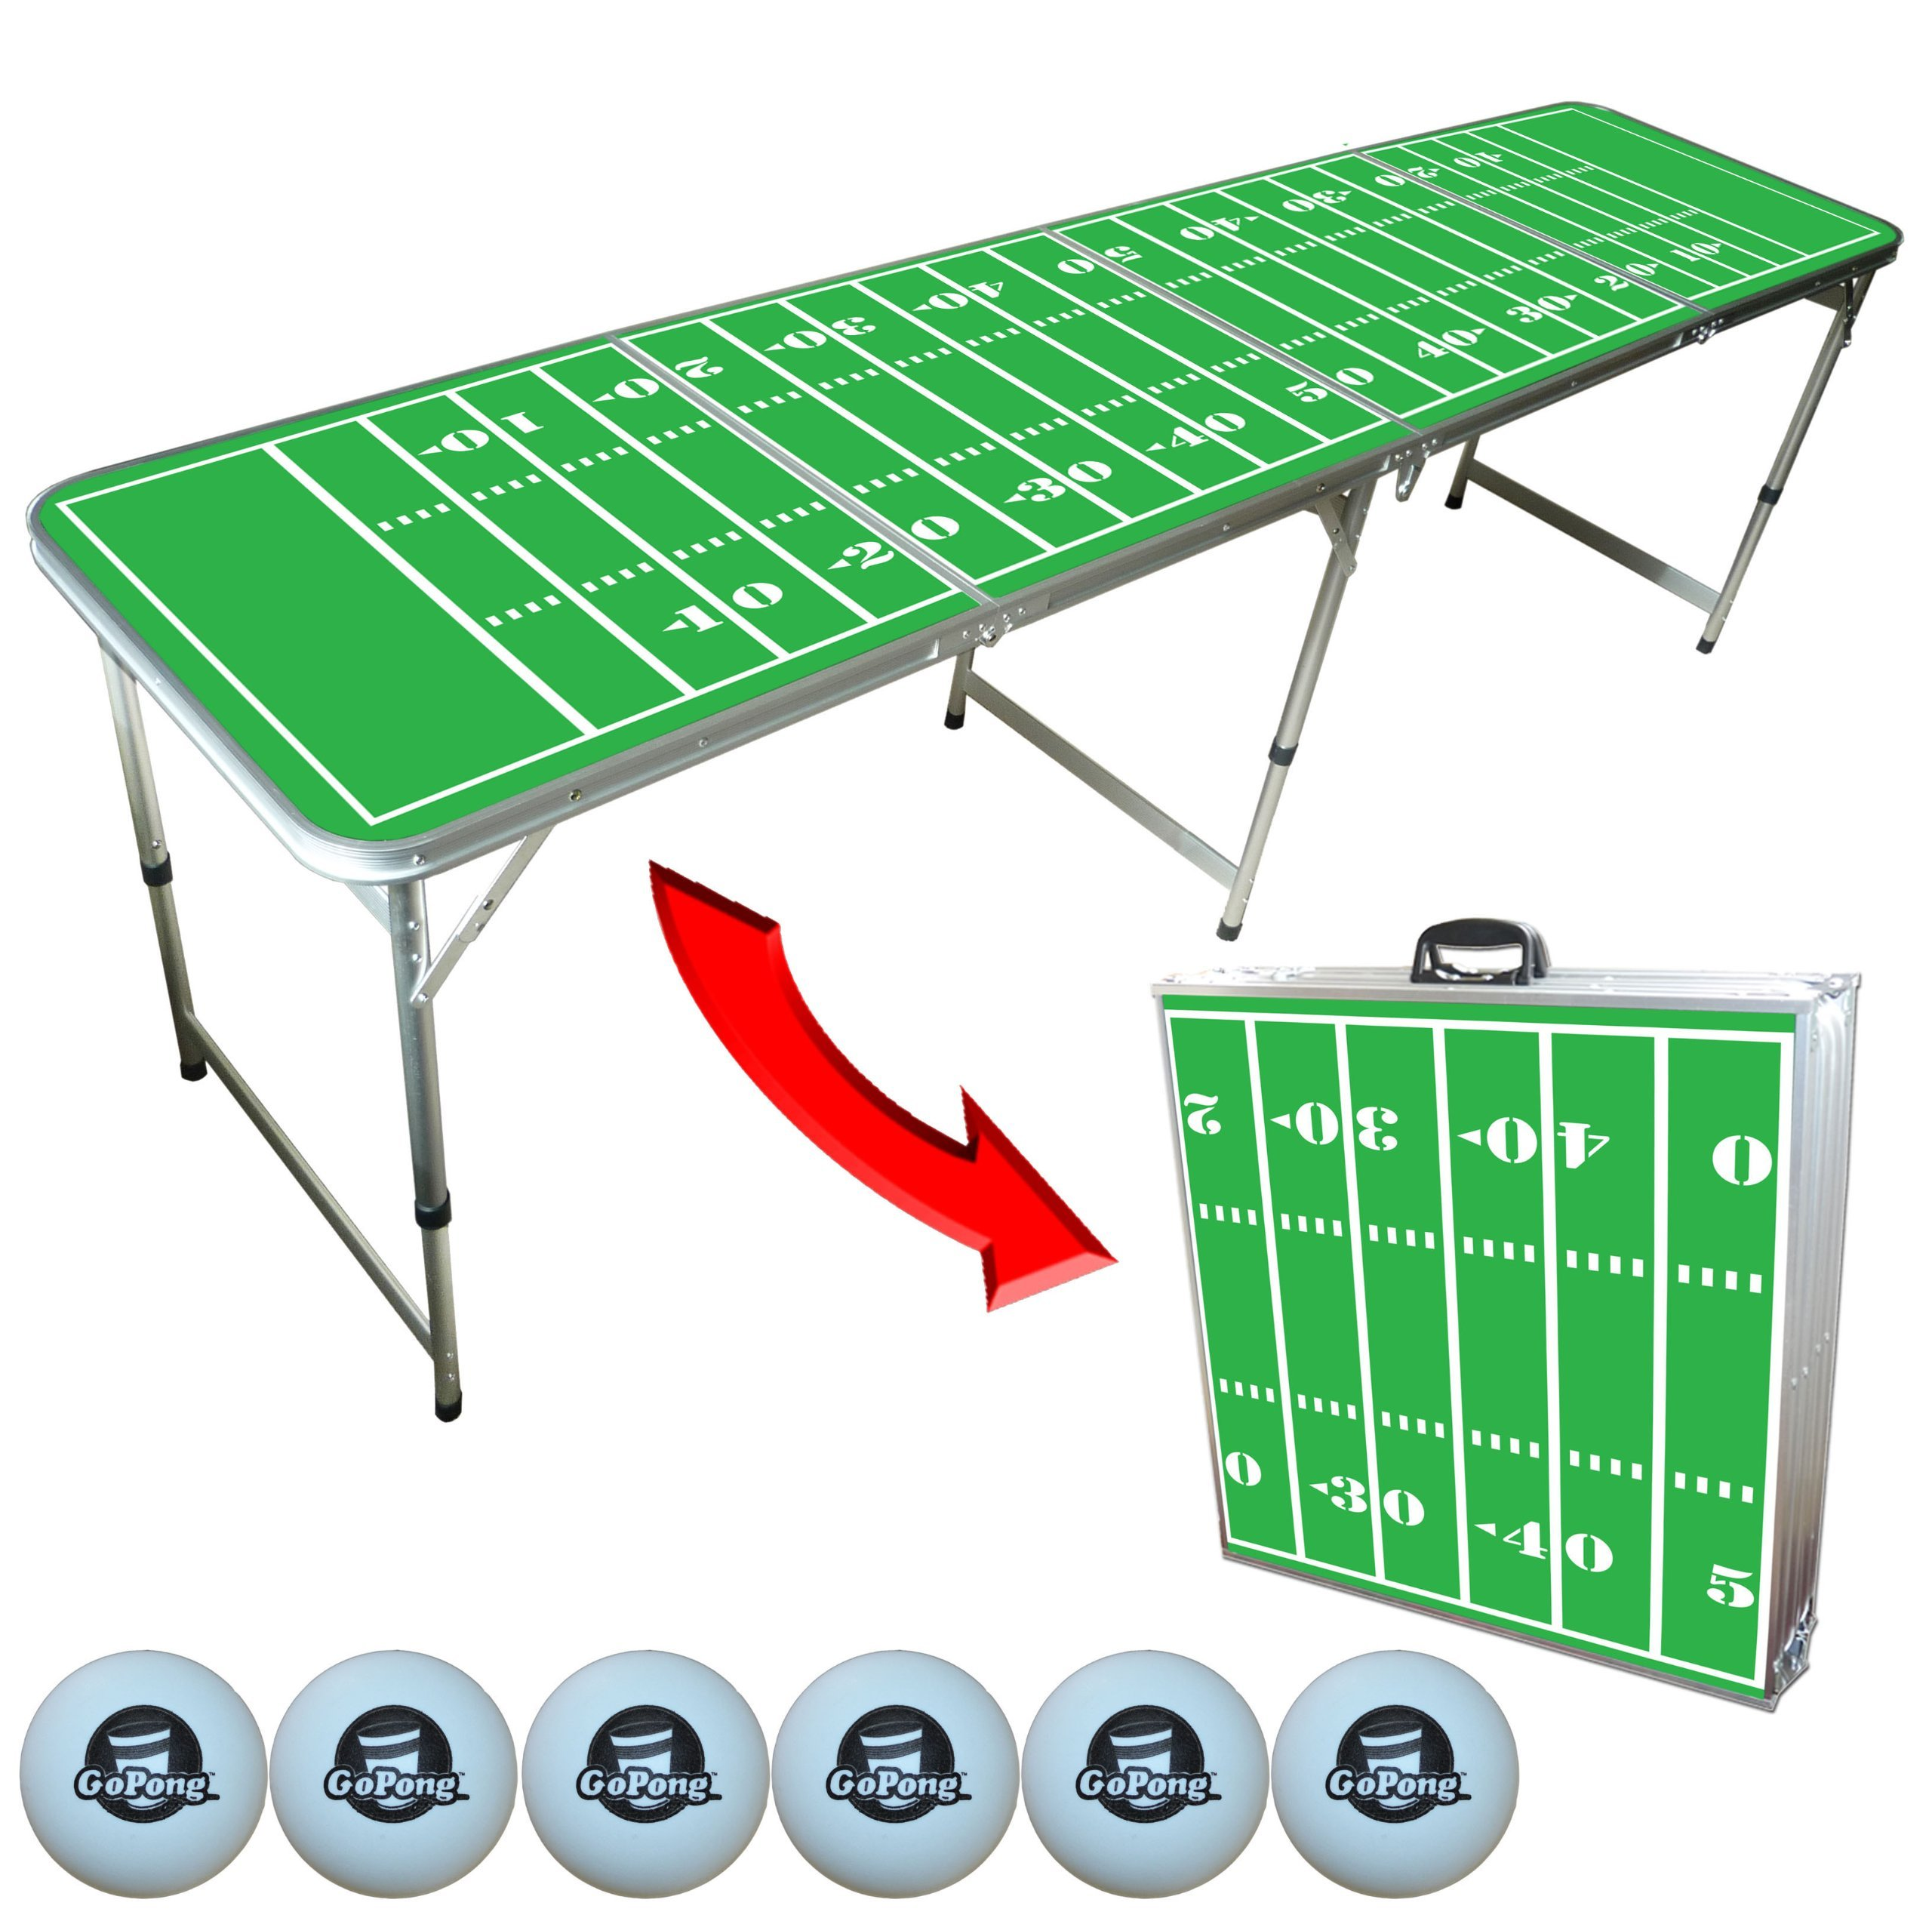 The Original Football Beer Pong Table, 2x8, 8ft Tailgate Table, Aluminum, All Weather, Lightweight, Portable